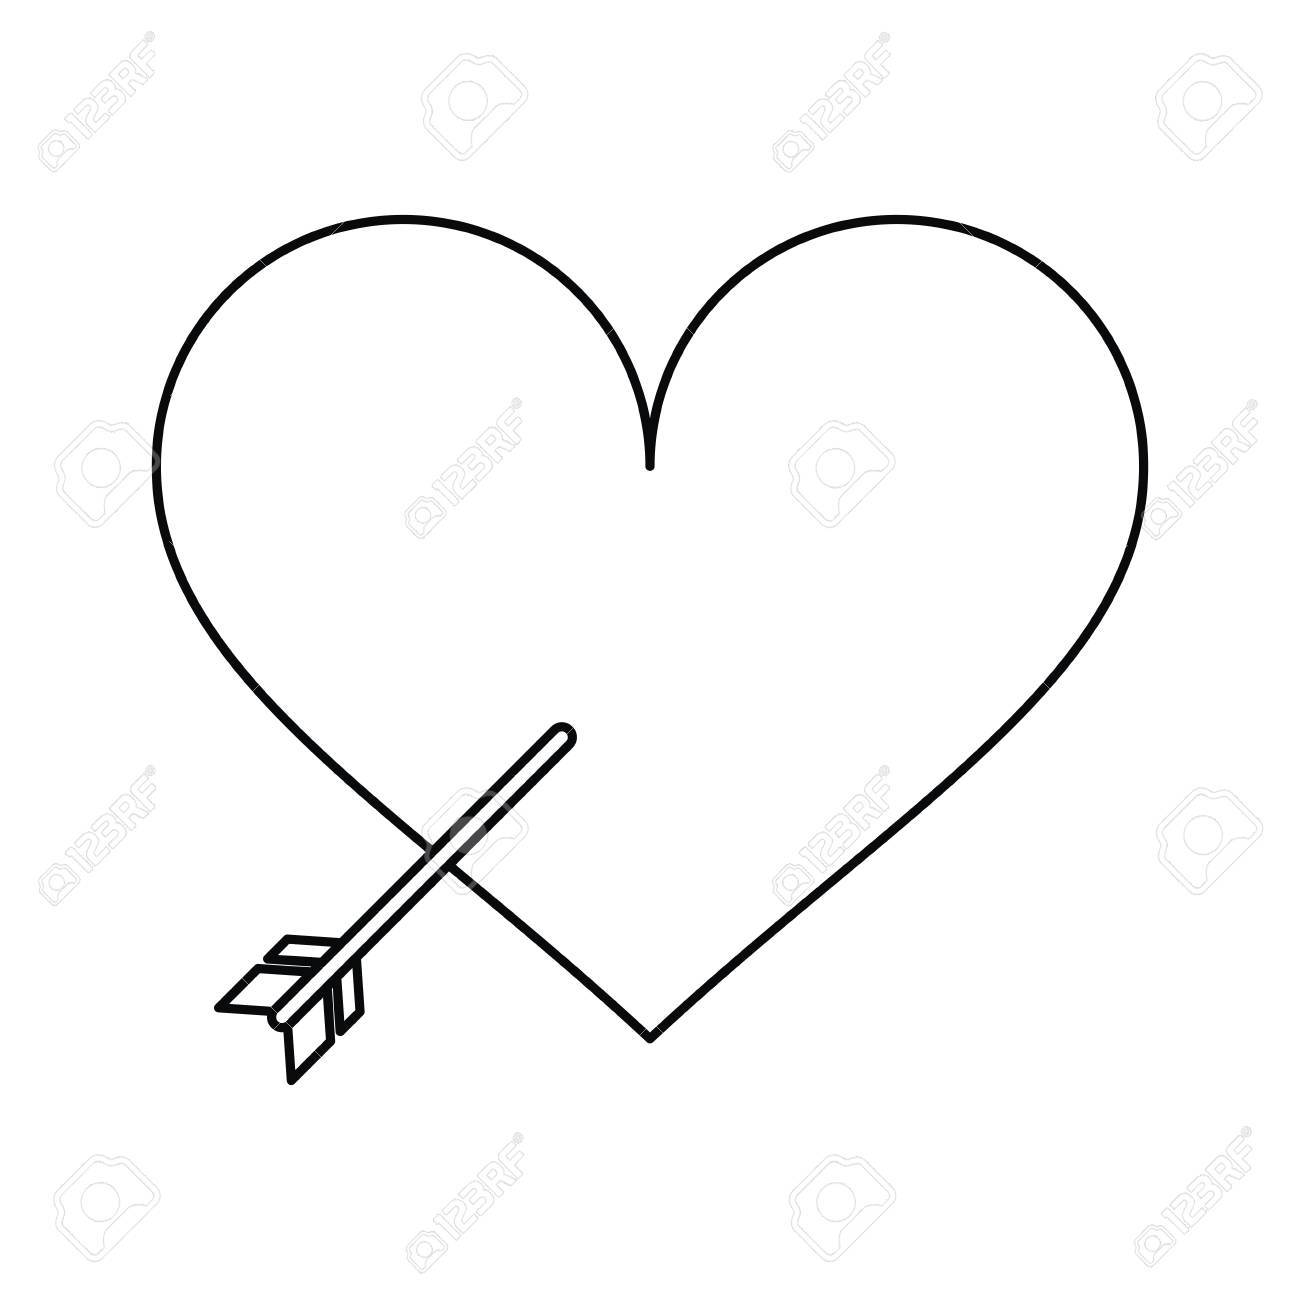 1300x1300 Heart With Arrow Love Symbol Outline Vector Illustration Eps